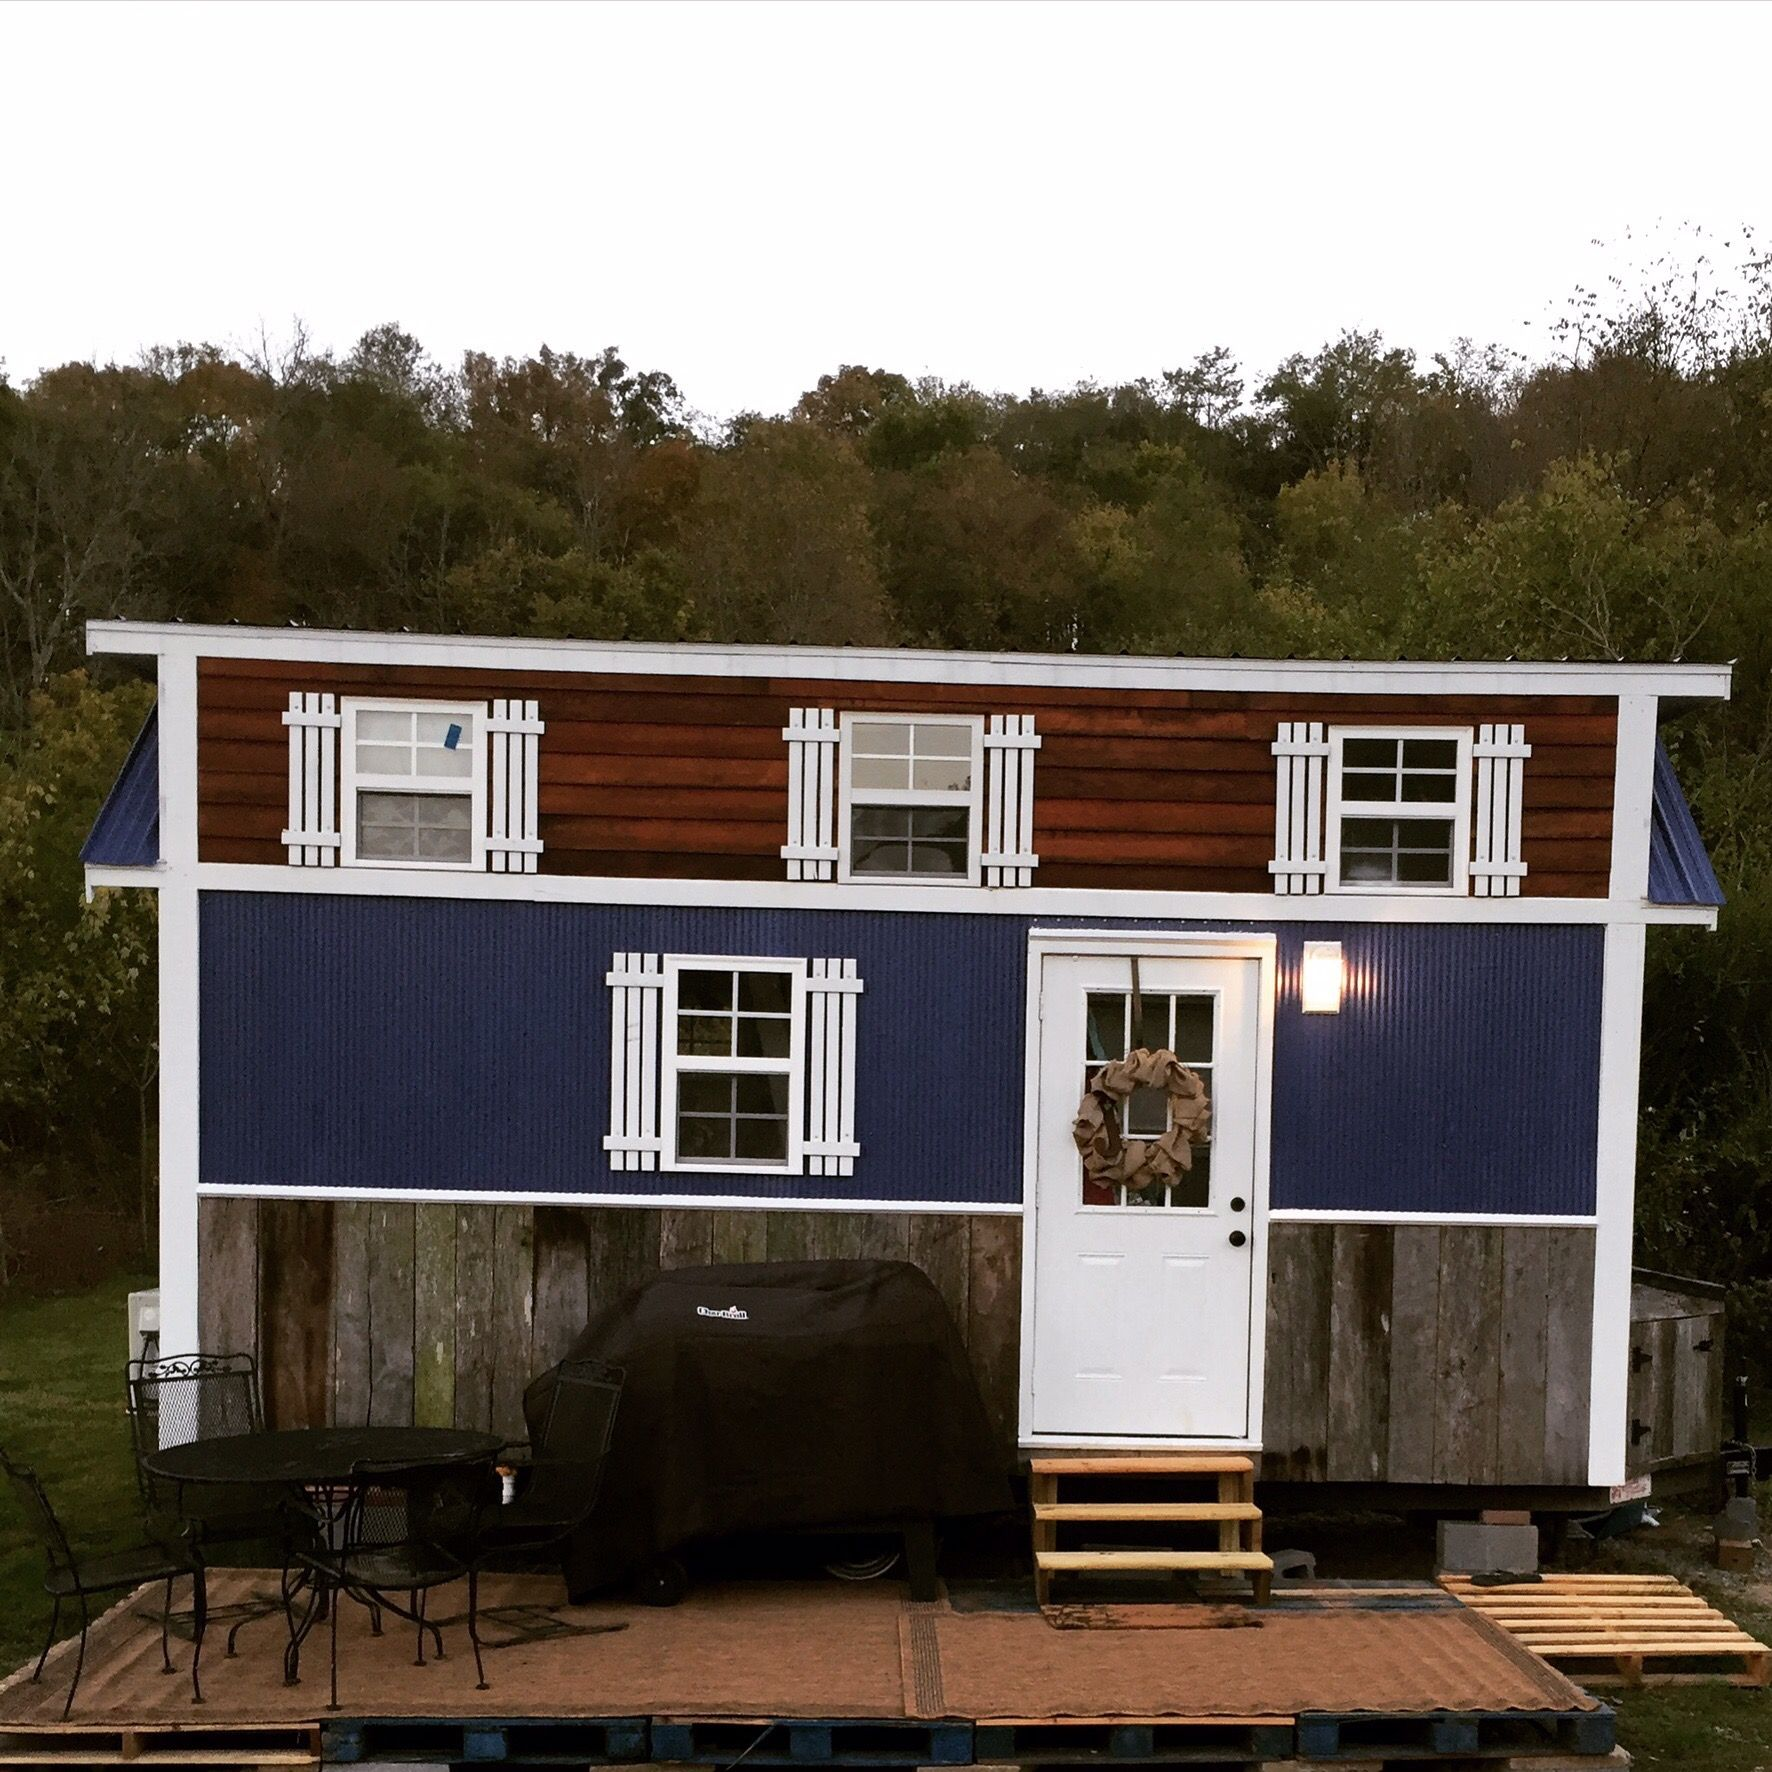 160 Sqft Tiny House On Wheels For Sale. We Are Selling This Fully Furnished  With